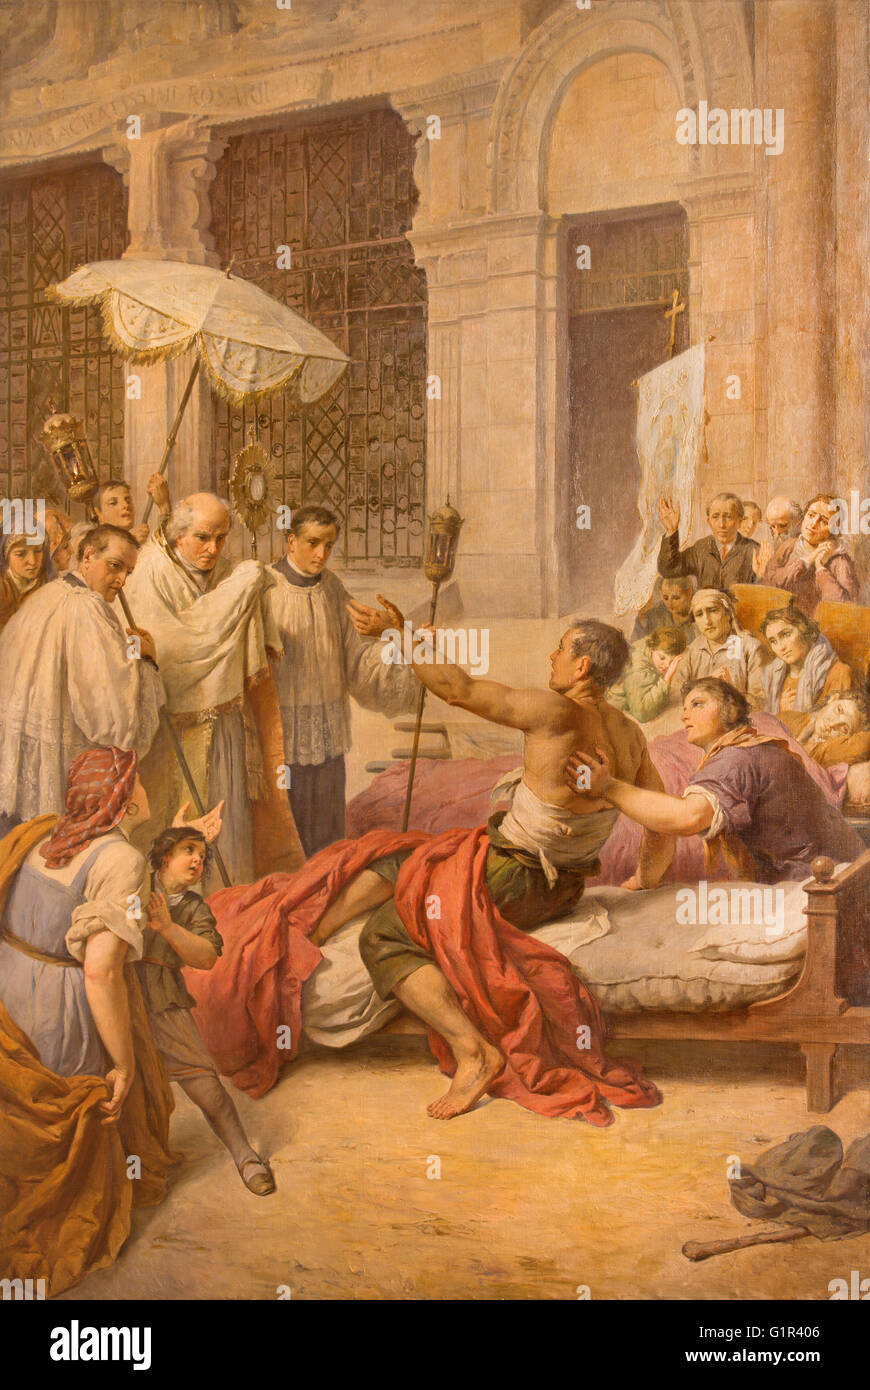 ROME, ITALY - MARCH 9, 2016: The Healing of a Sick person fresco by Aurelio Mariani (1931) in chapel of Our Lady - Stock Image